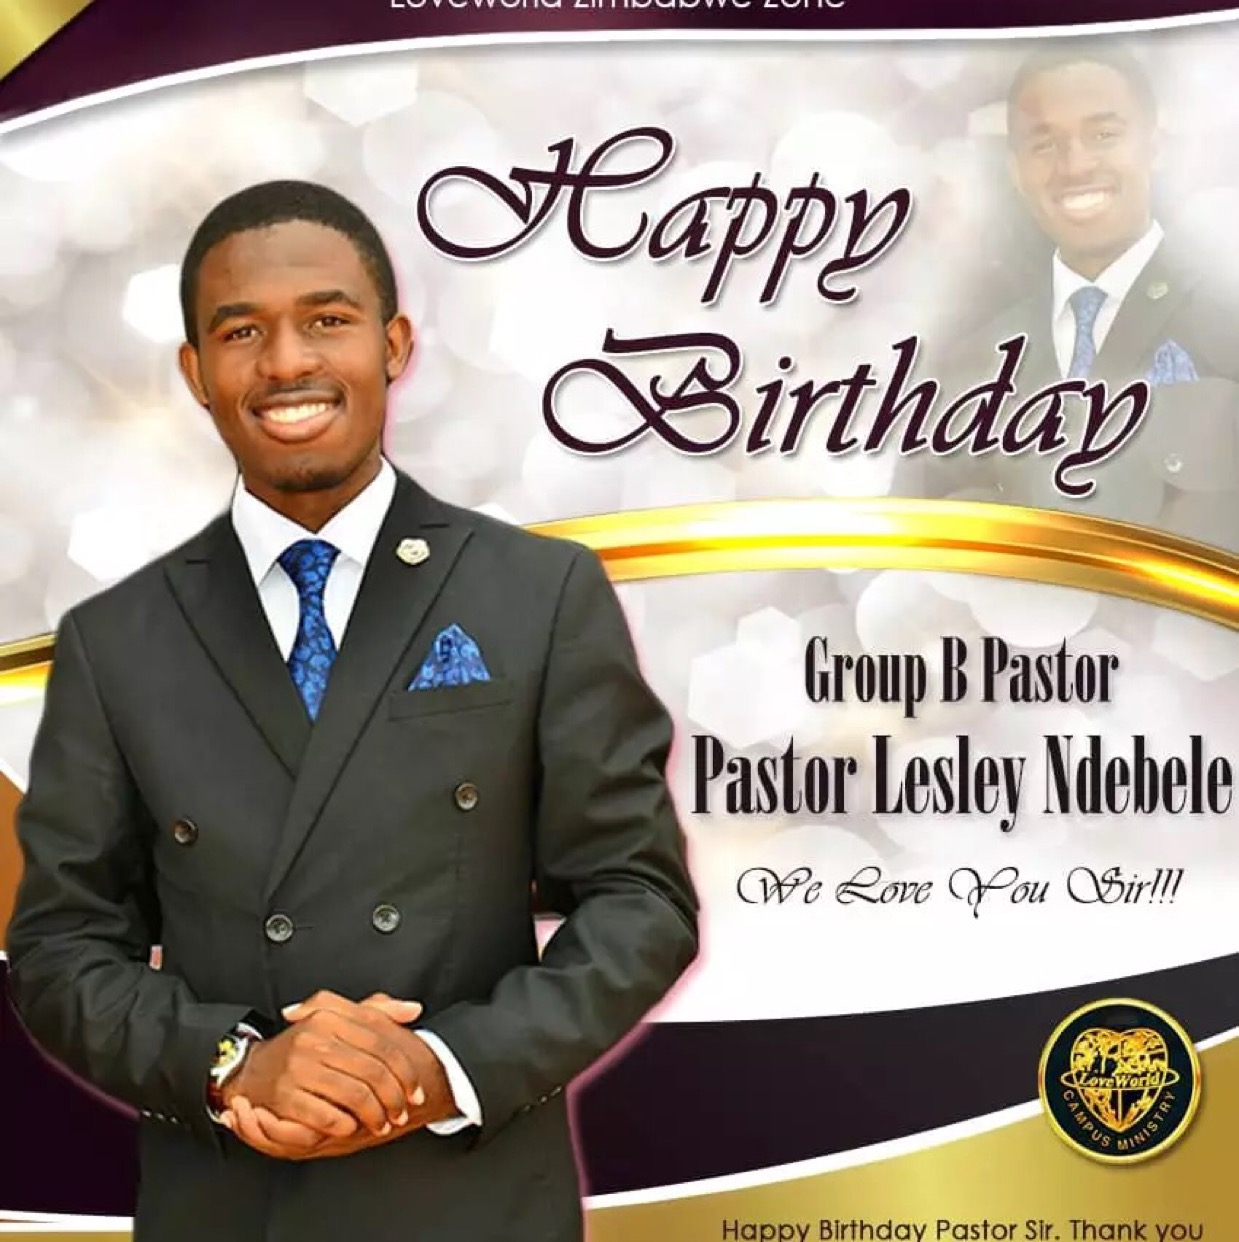 Happiest Birthday Pastor Les; a